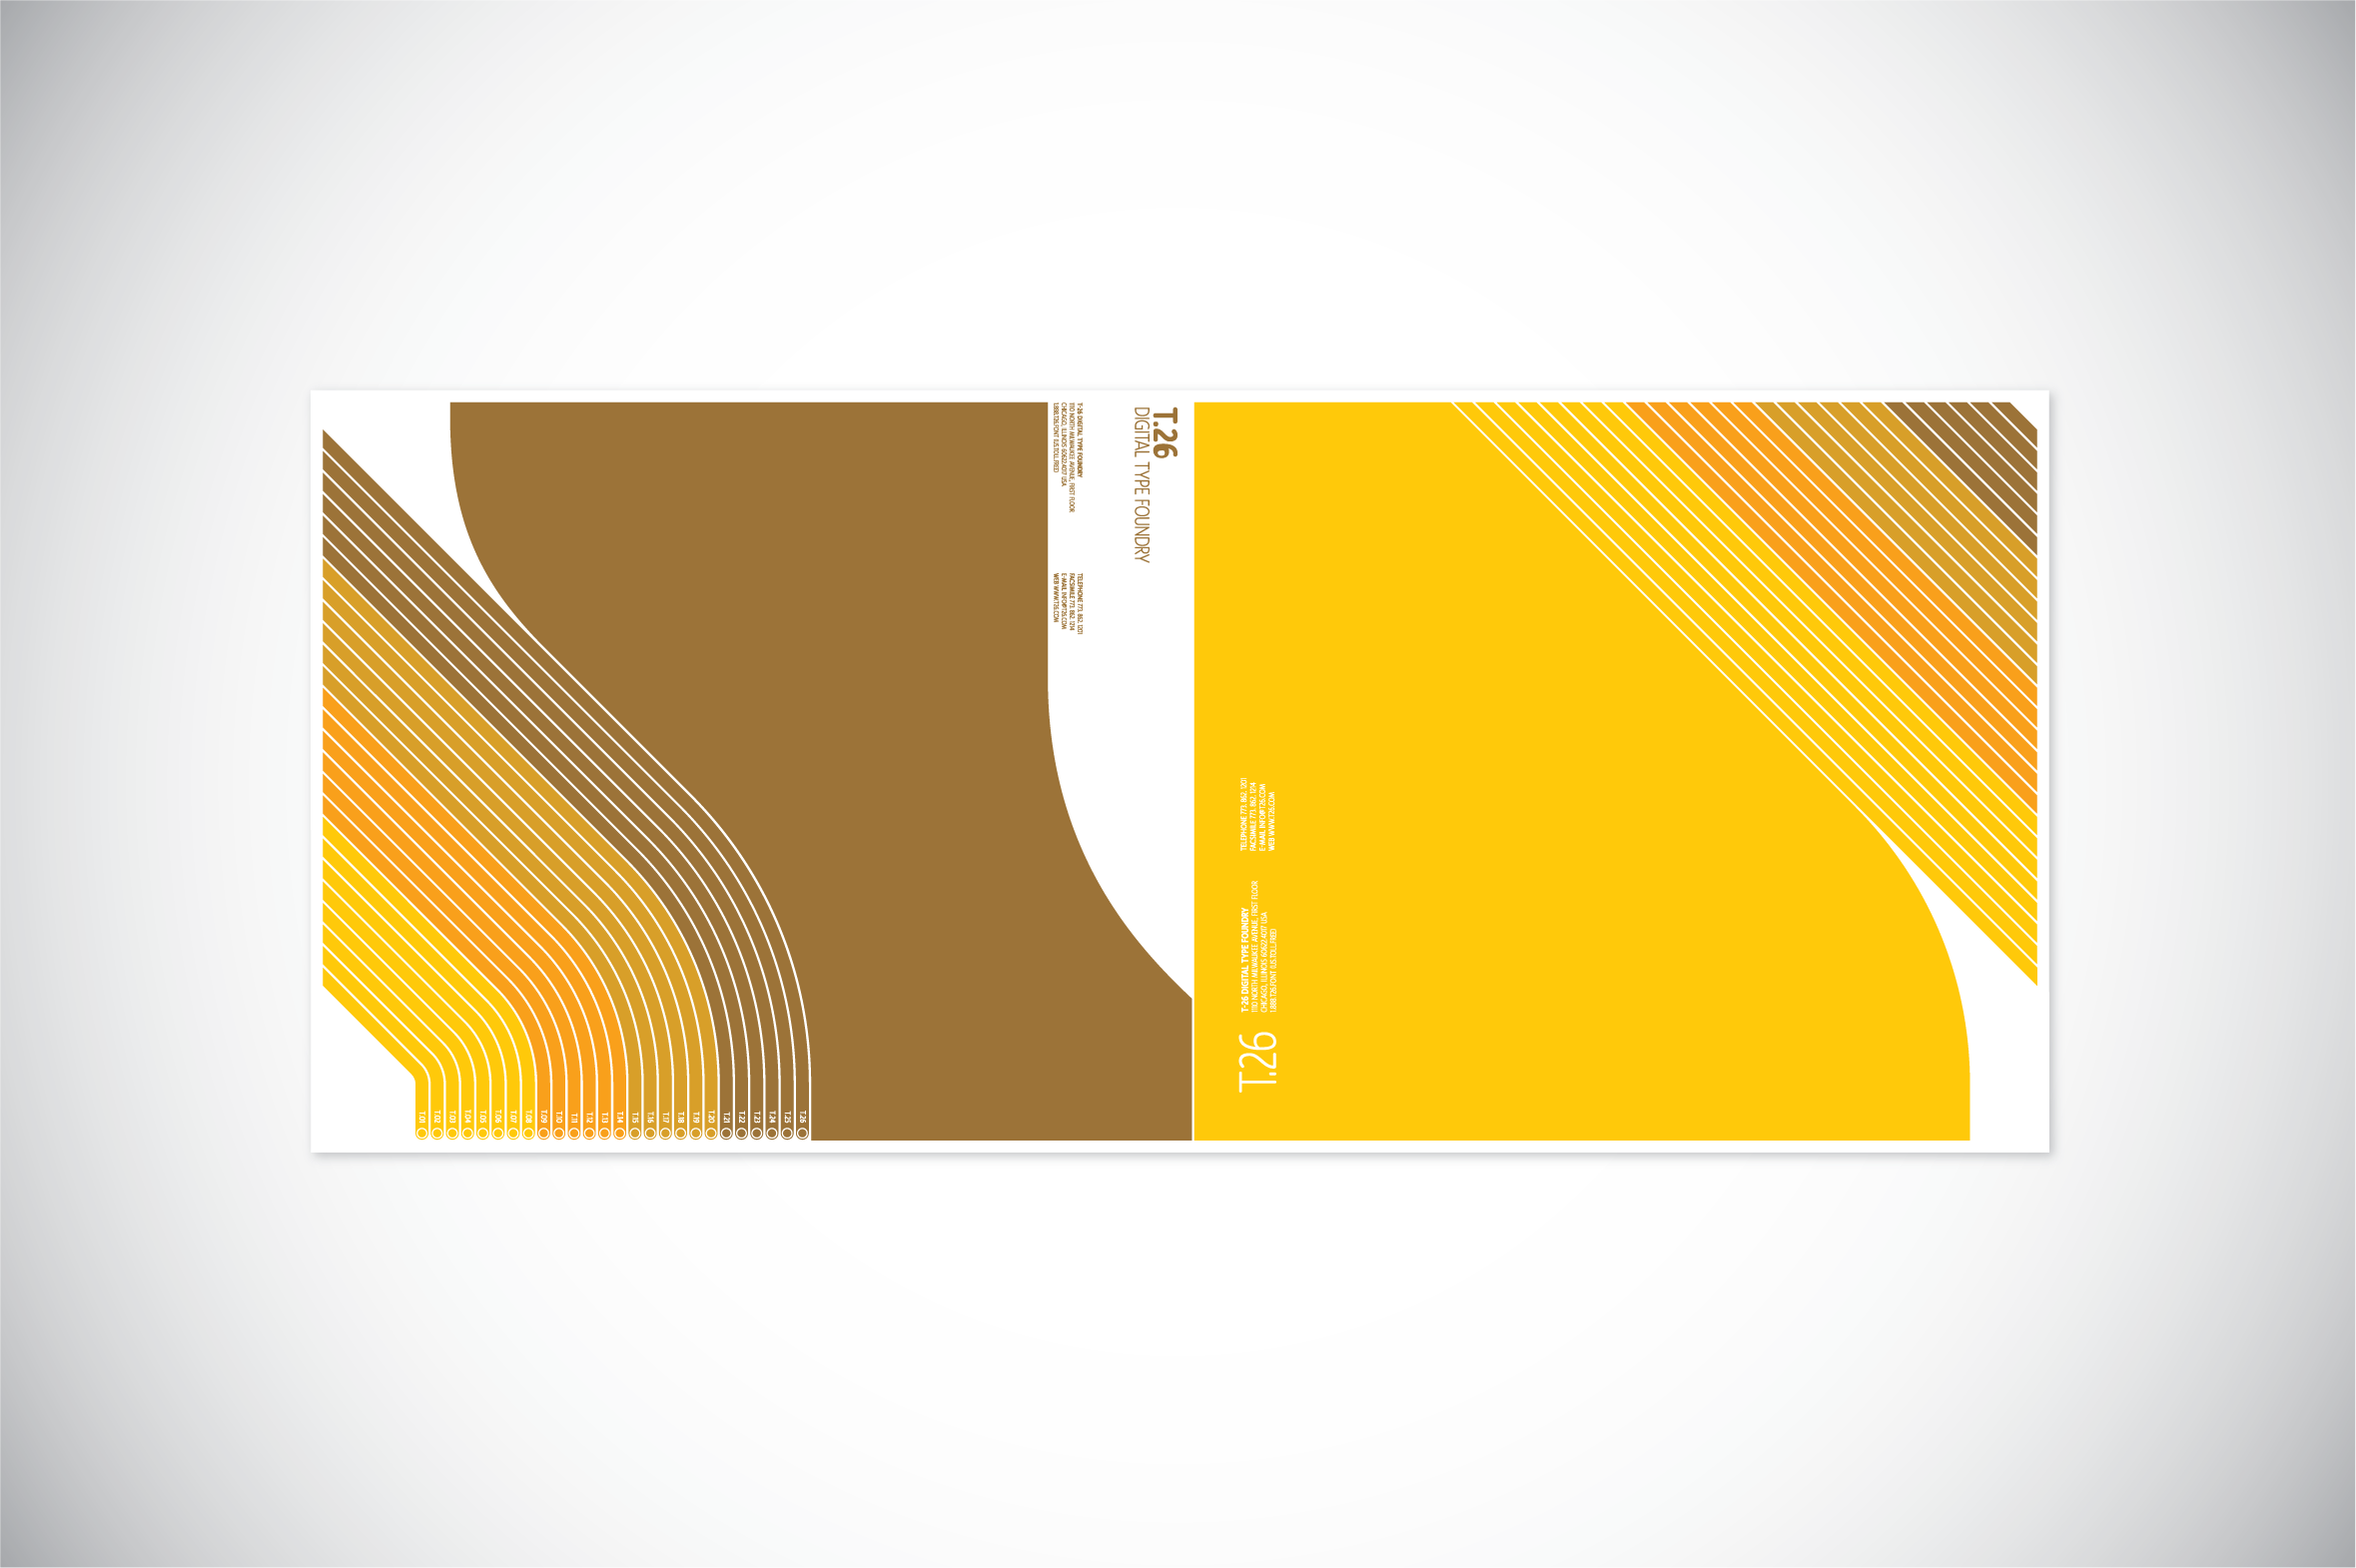 t26_box-label_fade_back_chris_01.png